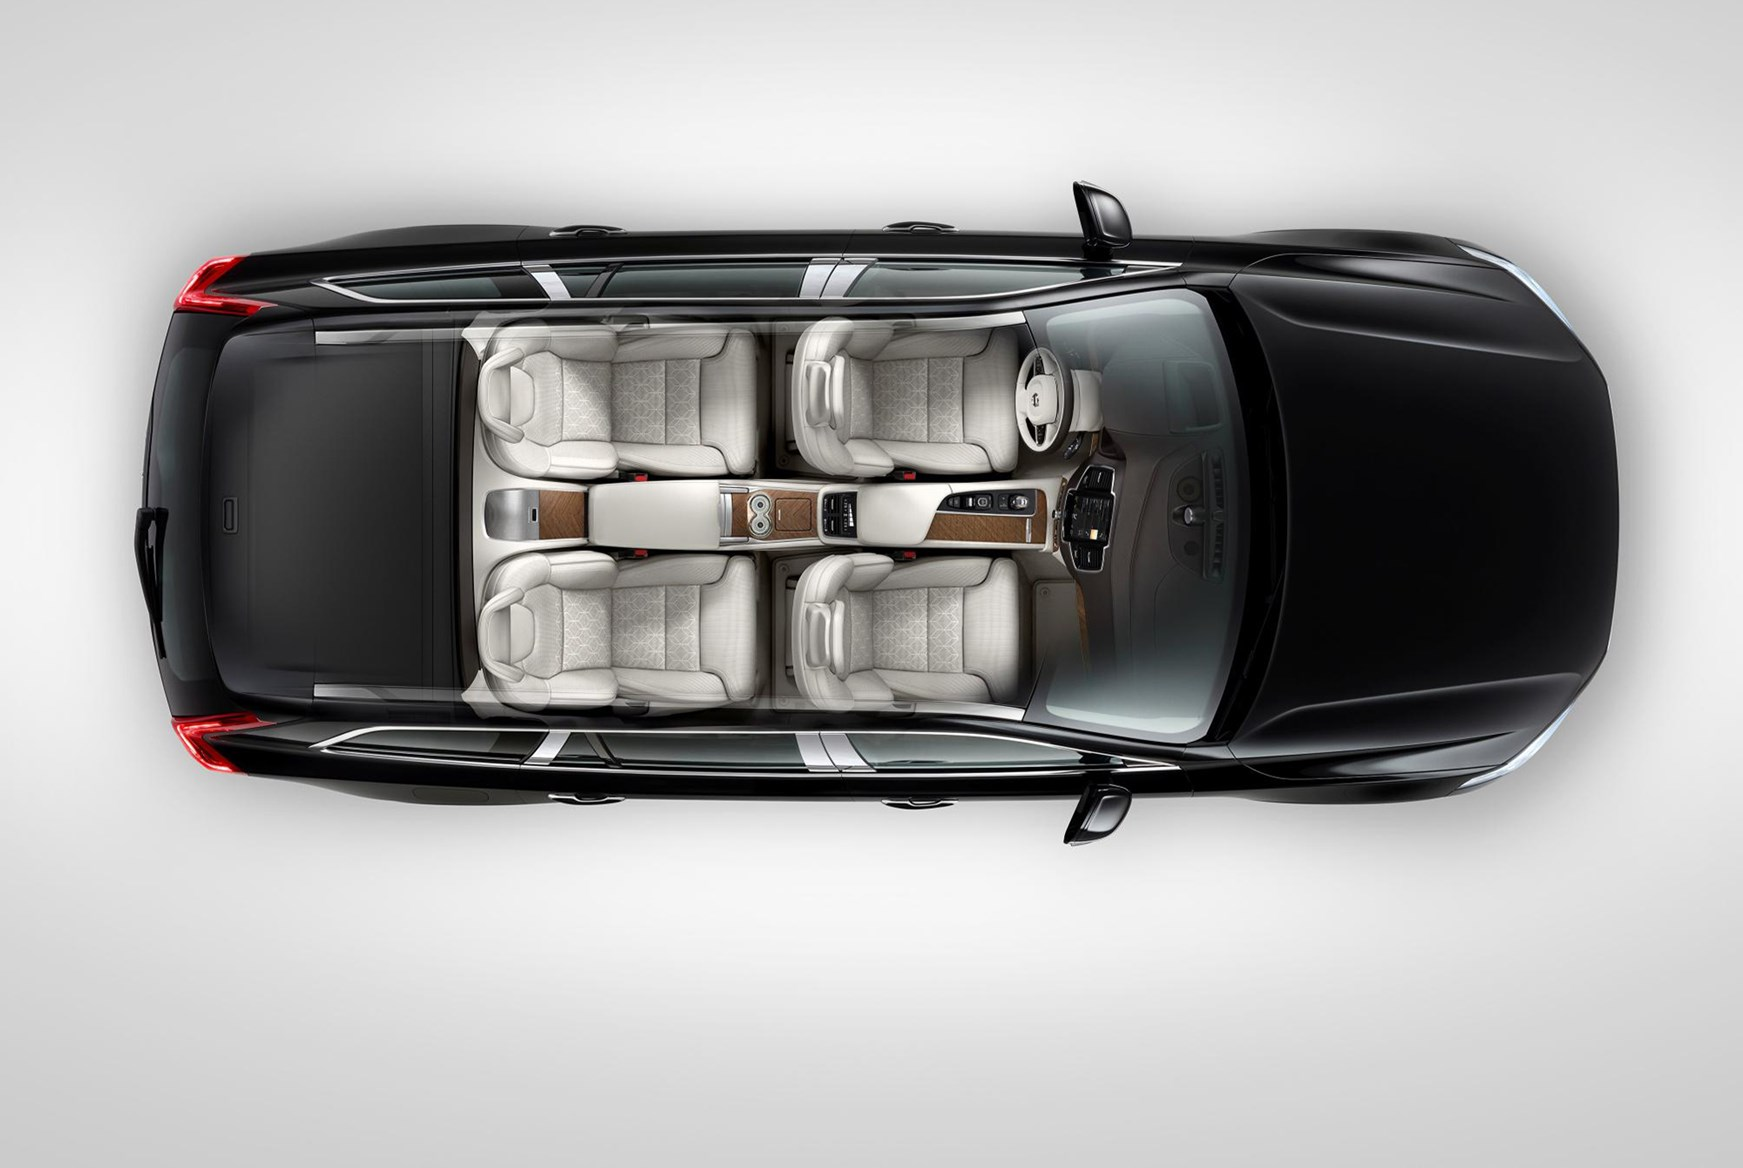 Volvo Xc90 Excellence Four Seater Suv Unveiled At 2015